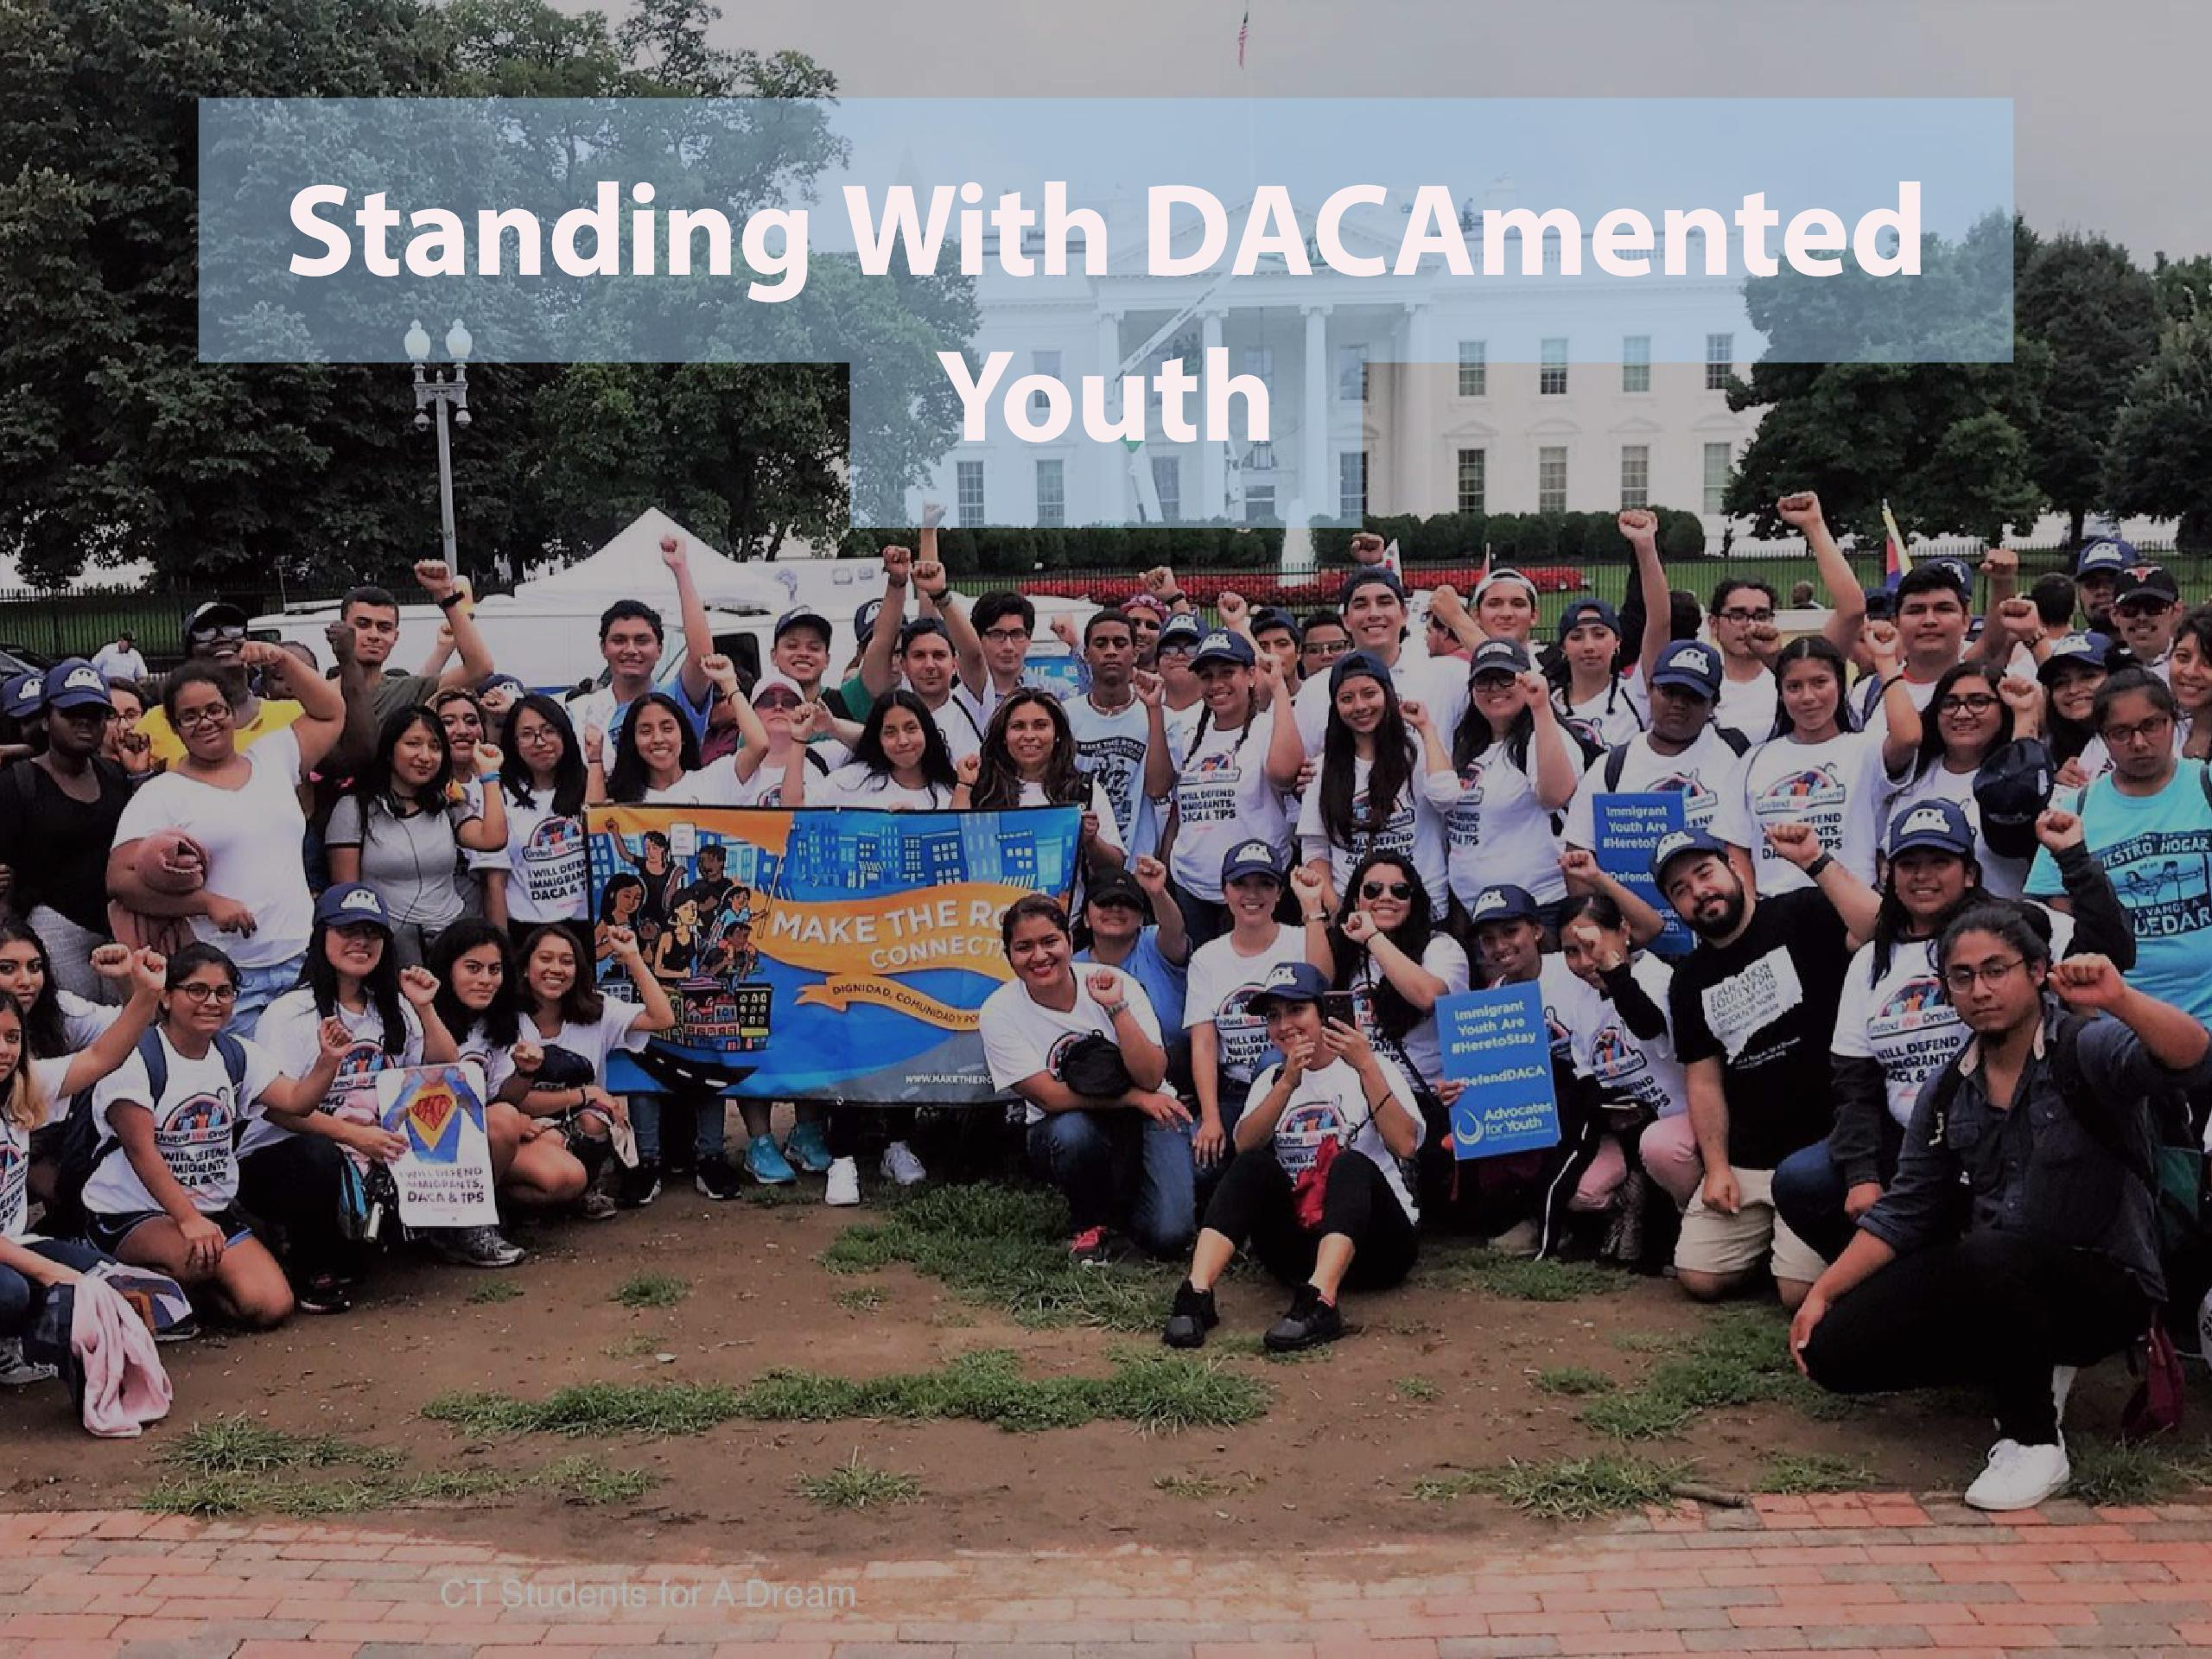 Standing with DACAmented Youth